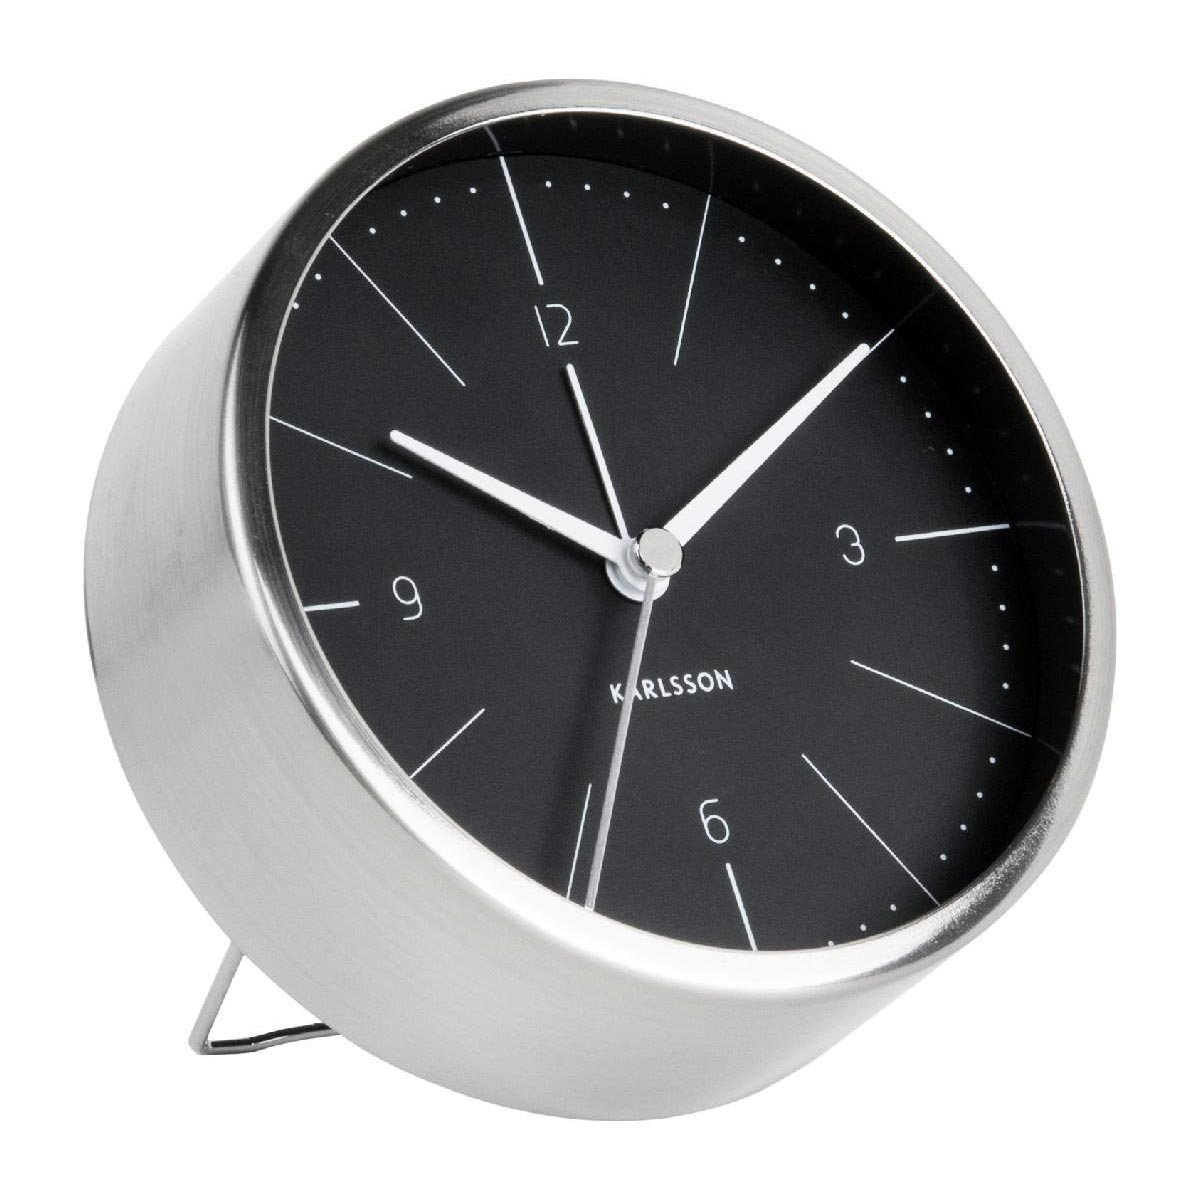 KARLSSON Normann alarm clock steel case black dial | The Design Gift Shop